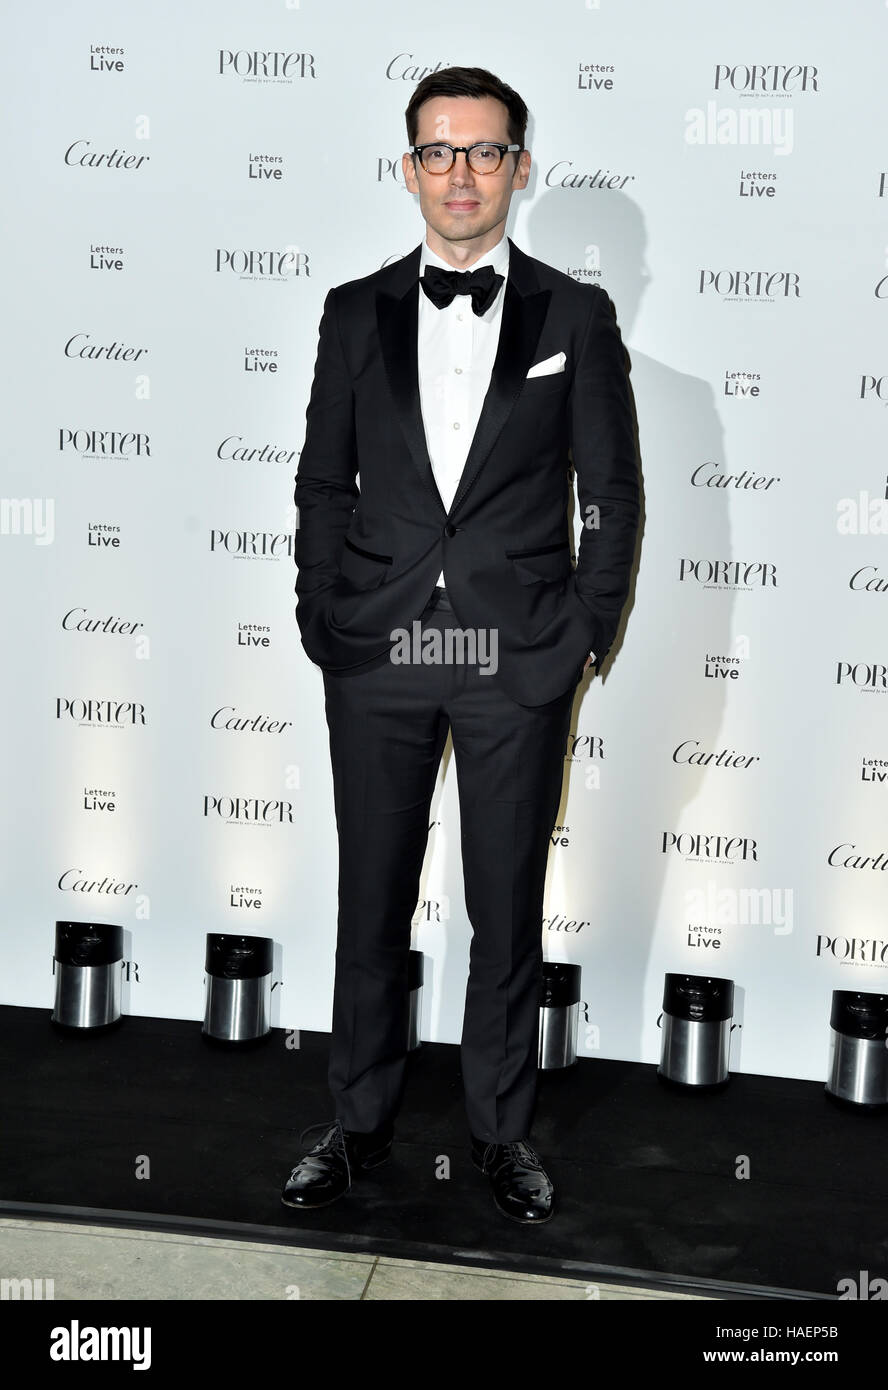 Erdem Moralioglu attending the Letters Live Black Tie Gala Dinner, at the V&A, London. - Stock Image